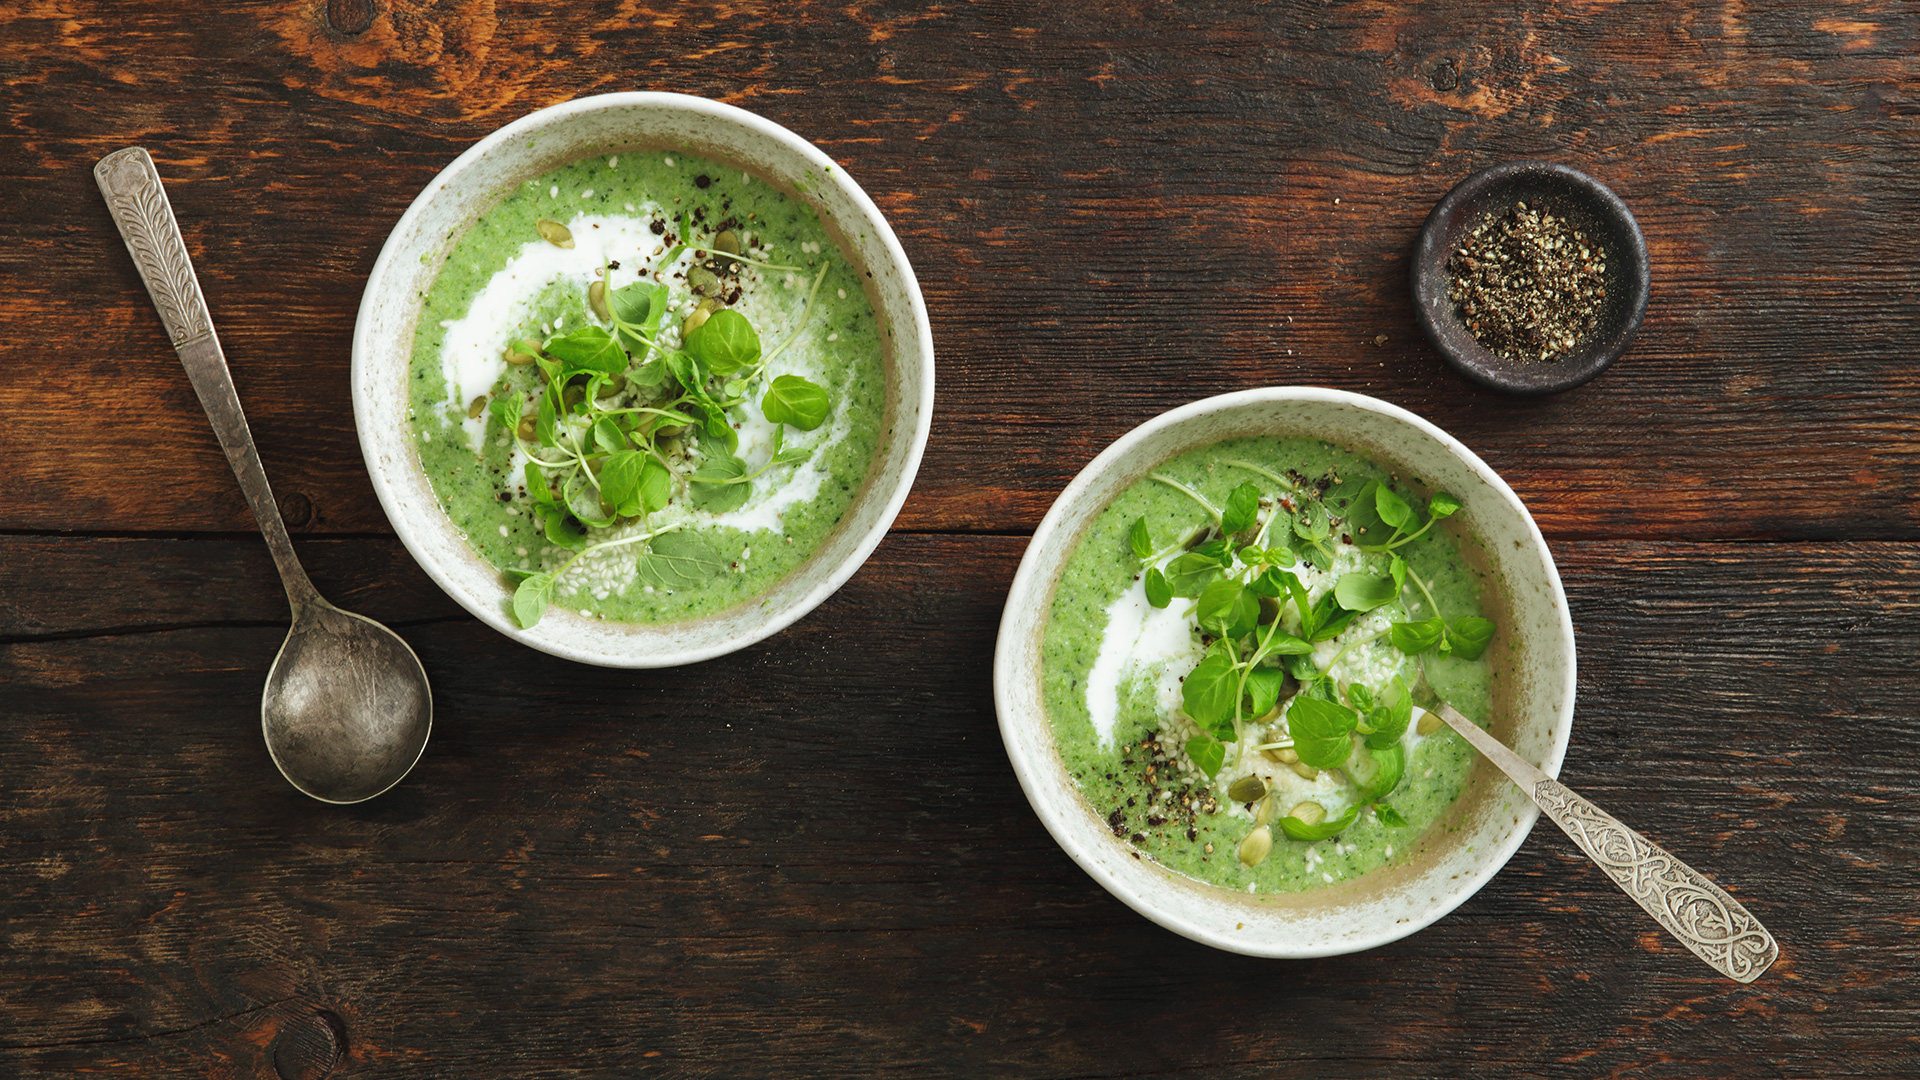 Green goddess soup recipe from Rosemary Ferguson for The Bicester Village Shopping Collection